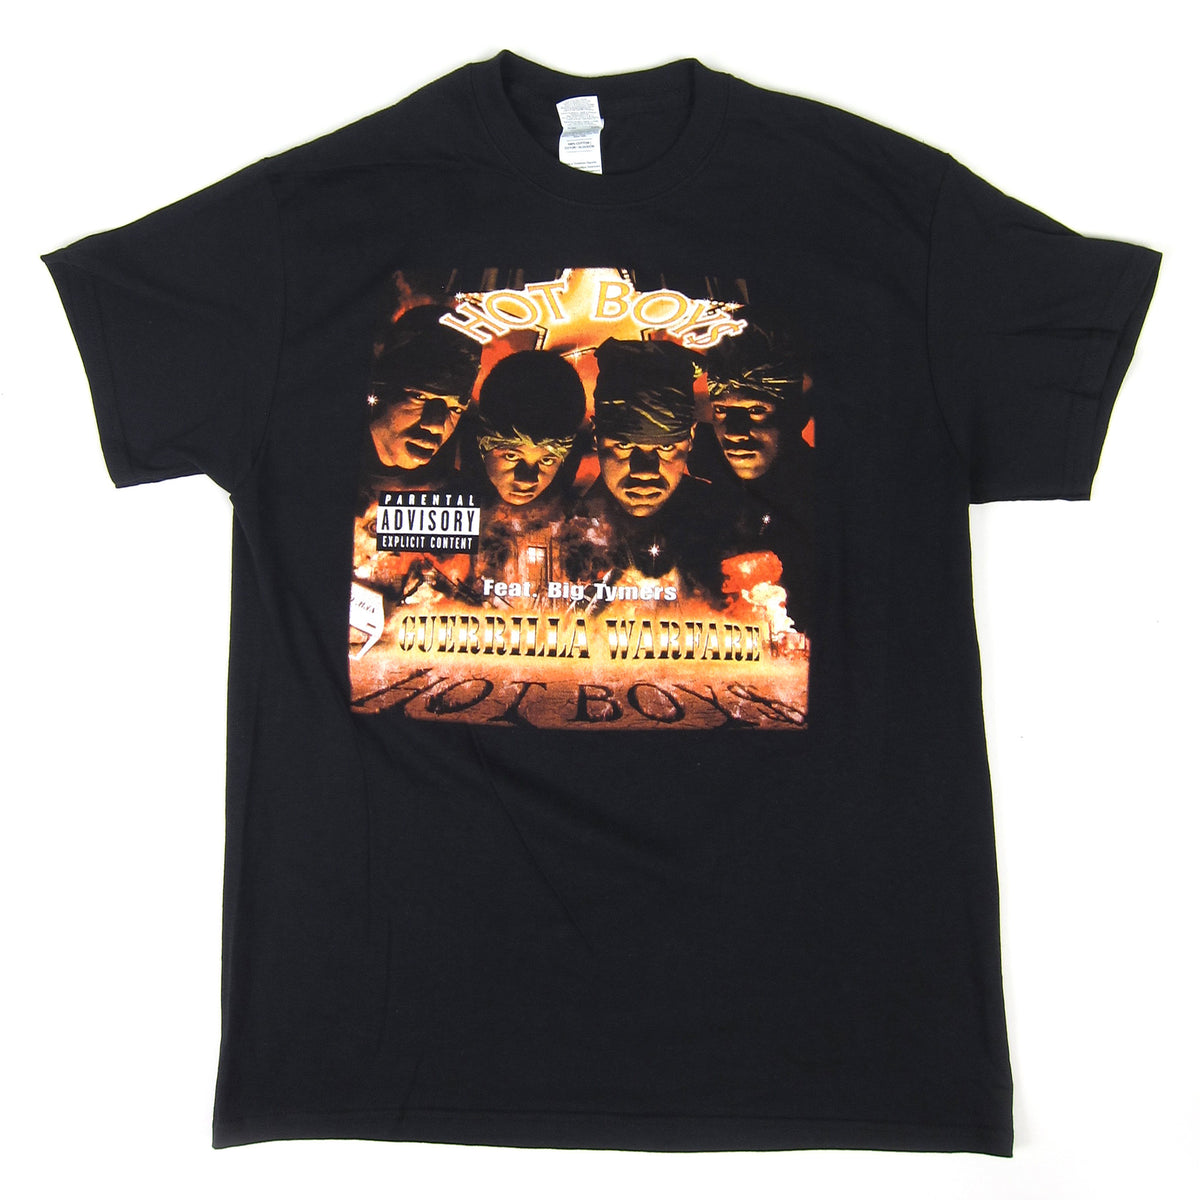 Hot Boys: Guerrilla Warfare Shirt - Black